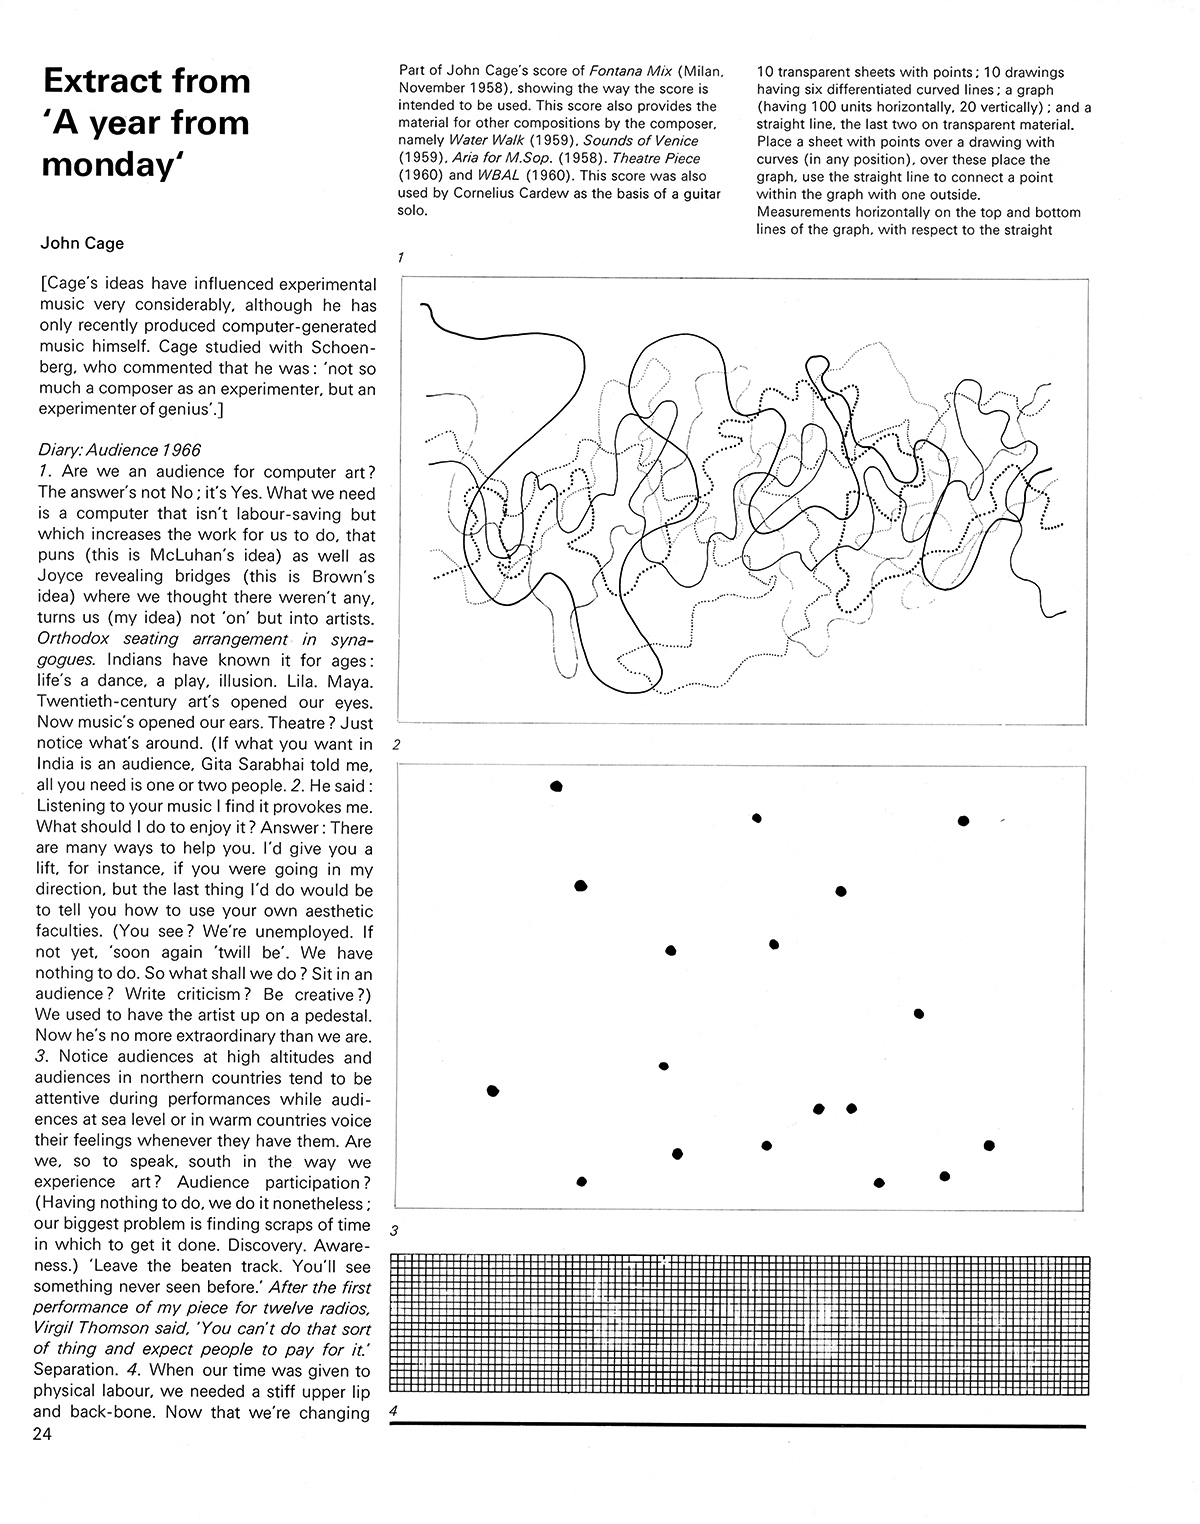 Extract from 'A year from monday' by John Cage. Cybernetic Serendipity: The Computer and the Arts, Studio International Special Issue, 1968, page 24.